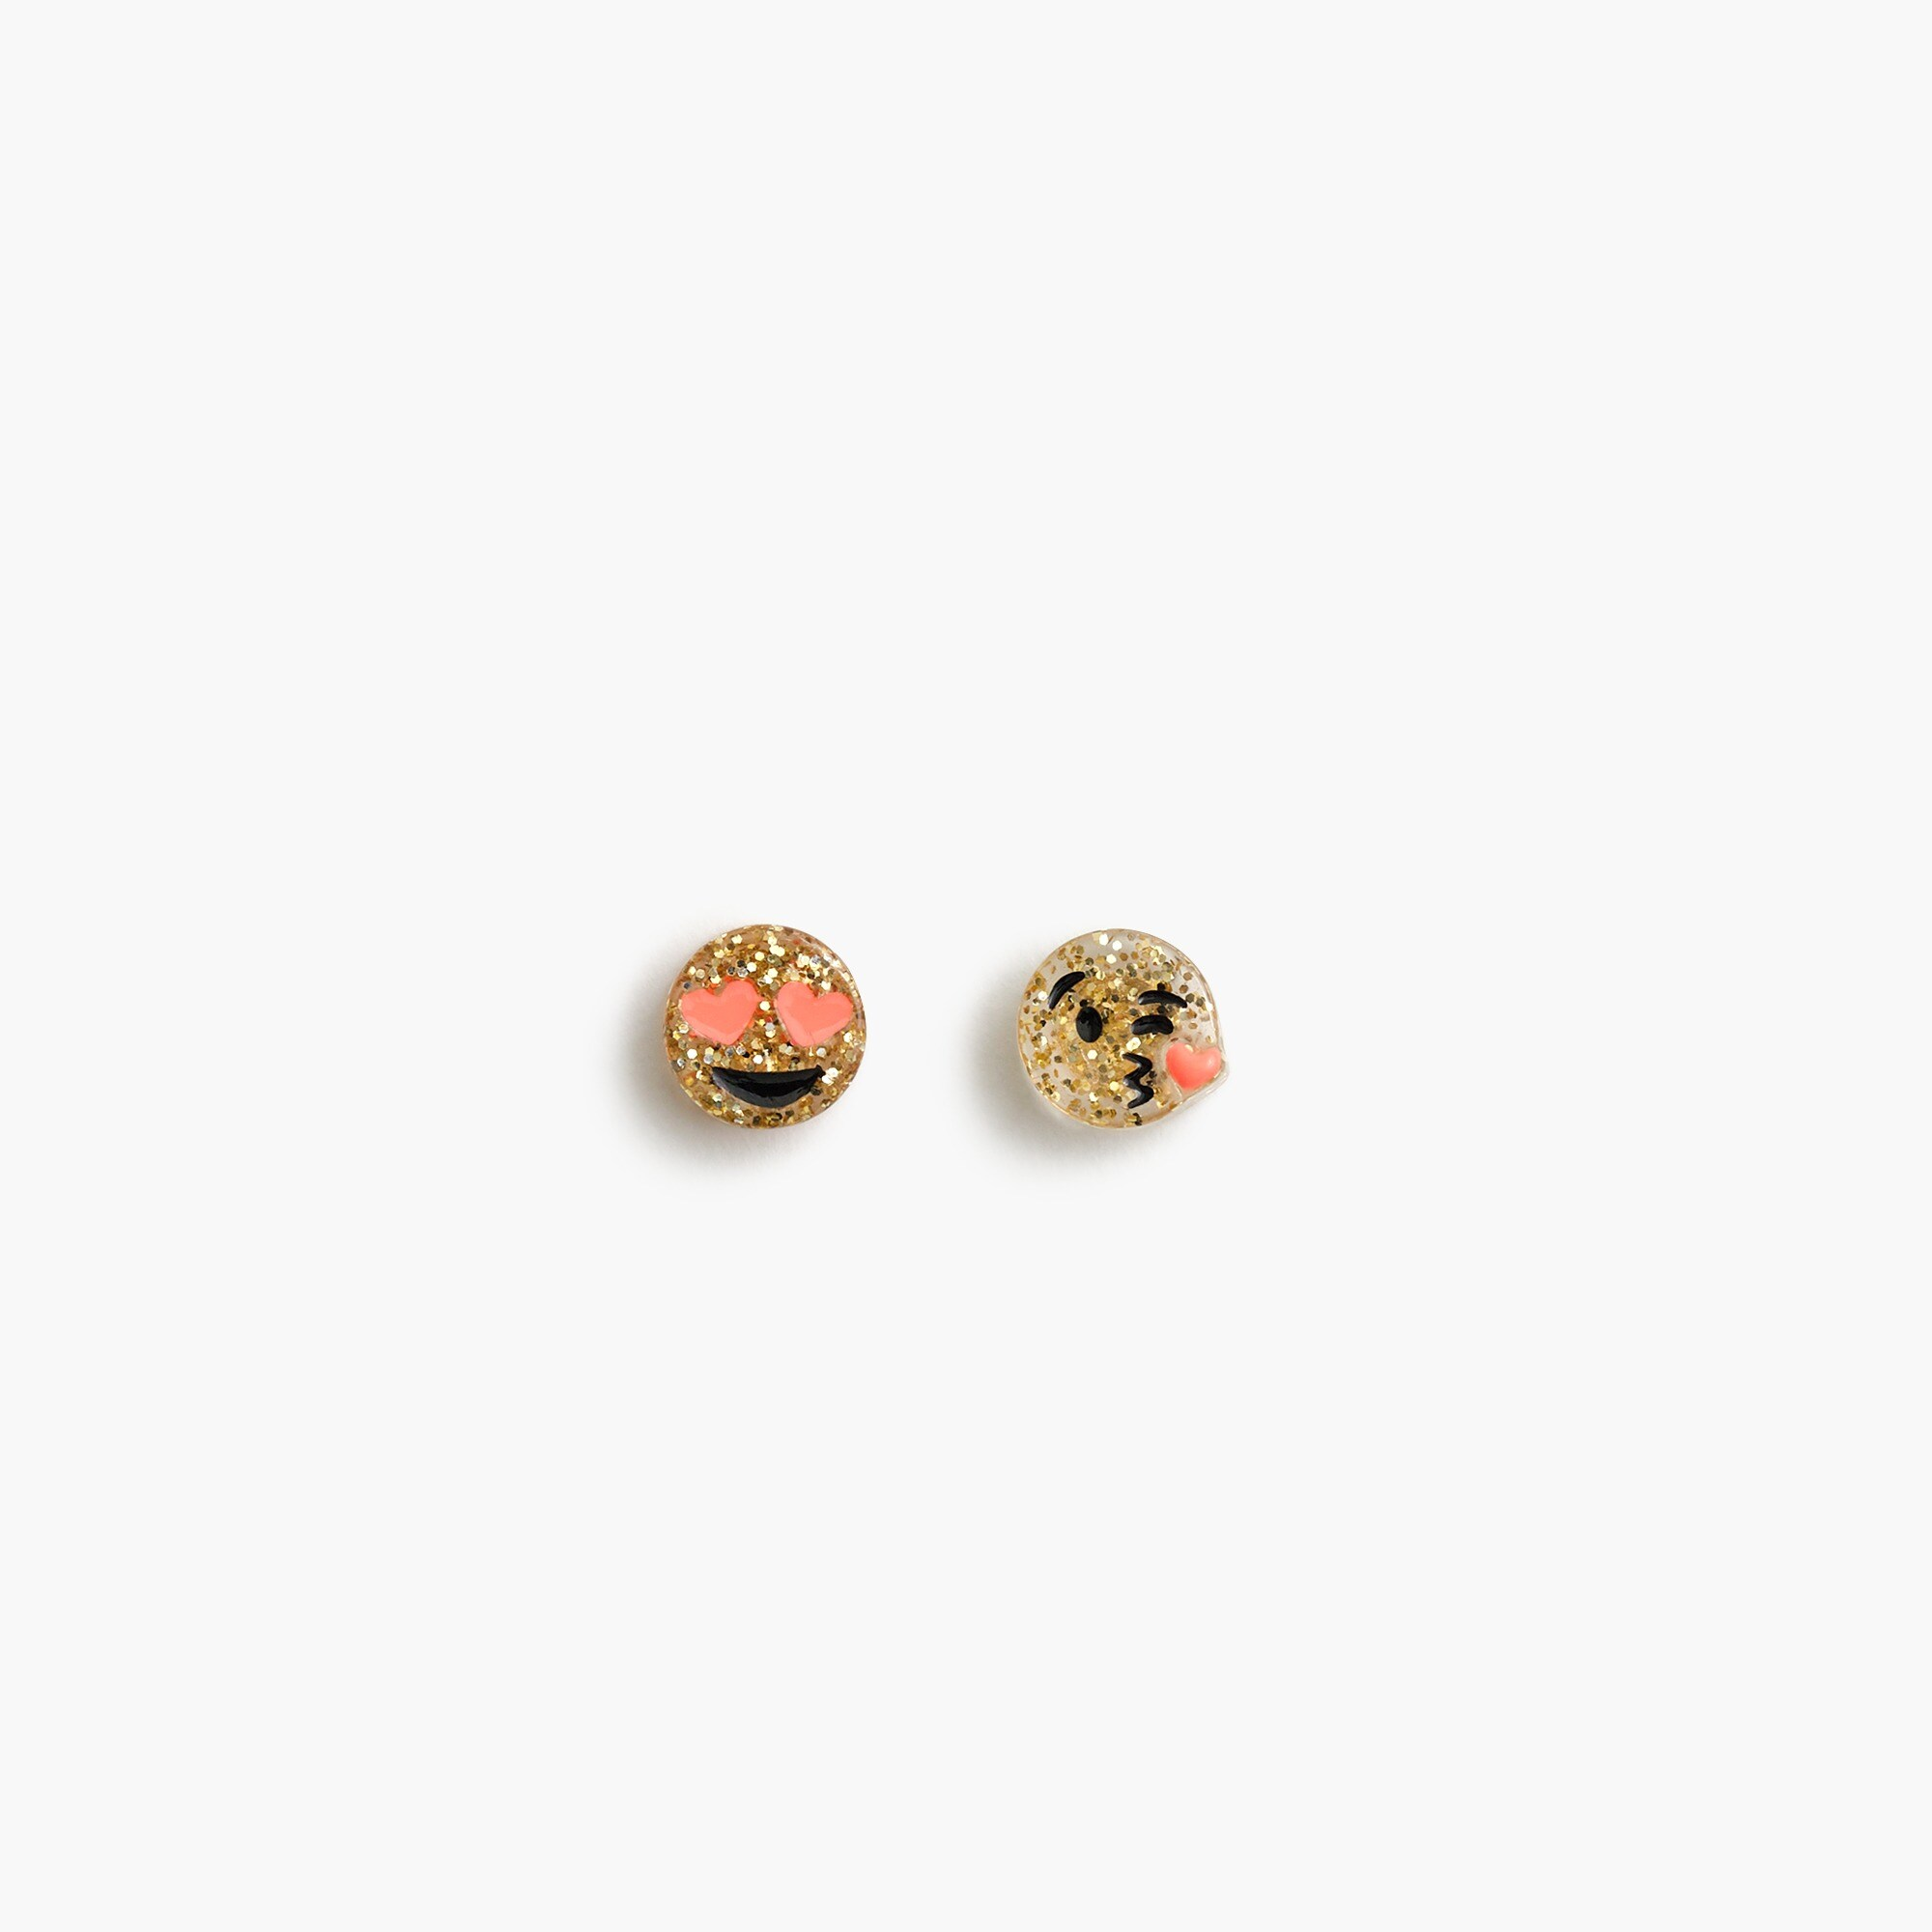 Girls' emoji stud earrings girl jewelry & accessories c